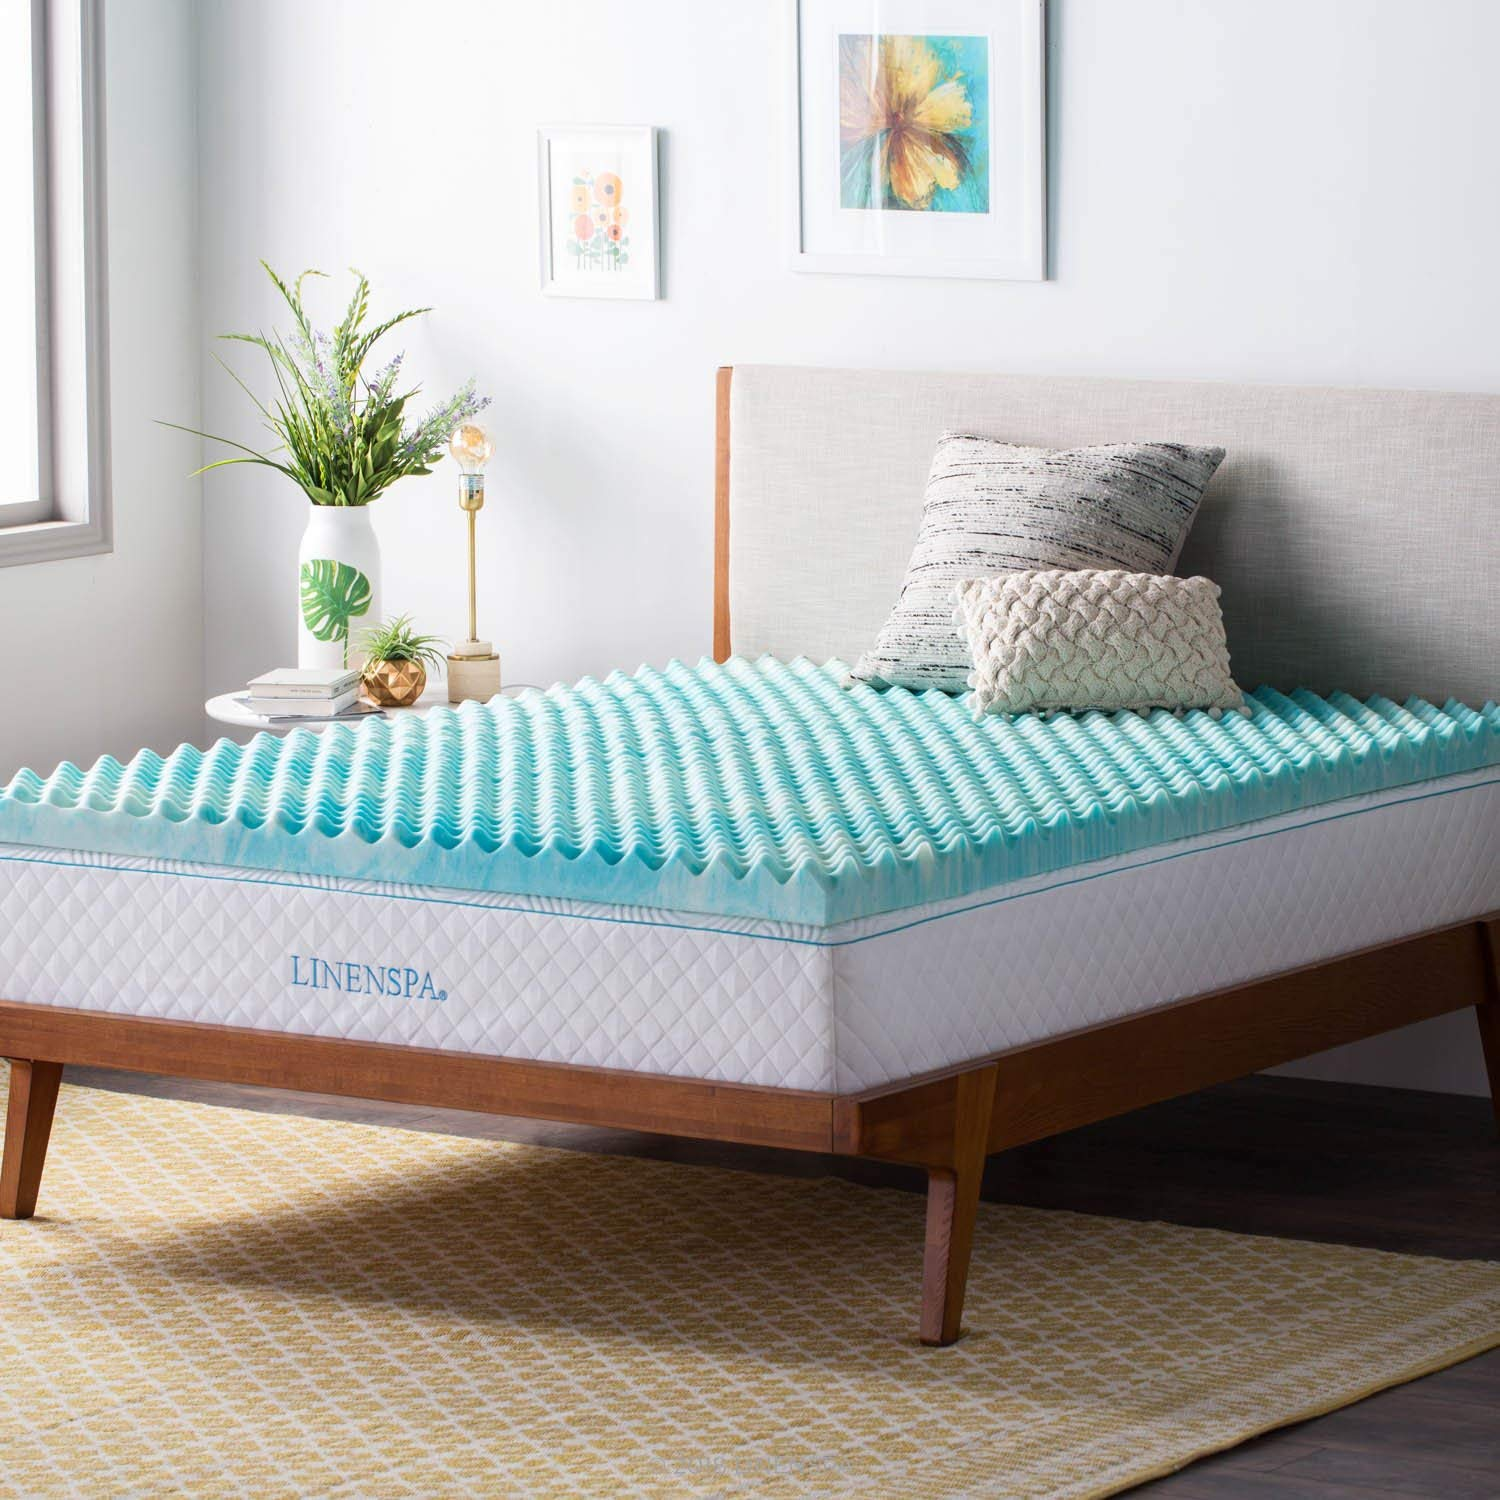 Linenspa Best Mattress Topper for Back Pain Review by www.snoremagazine.com